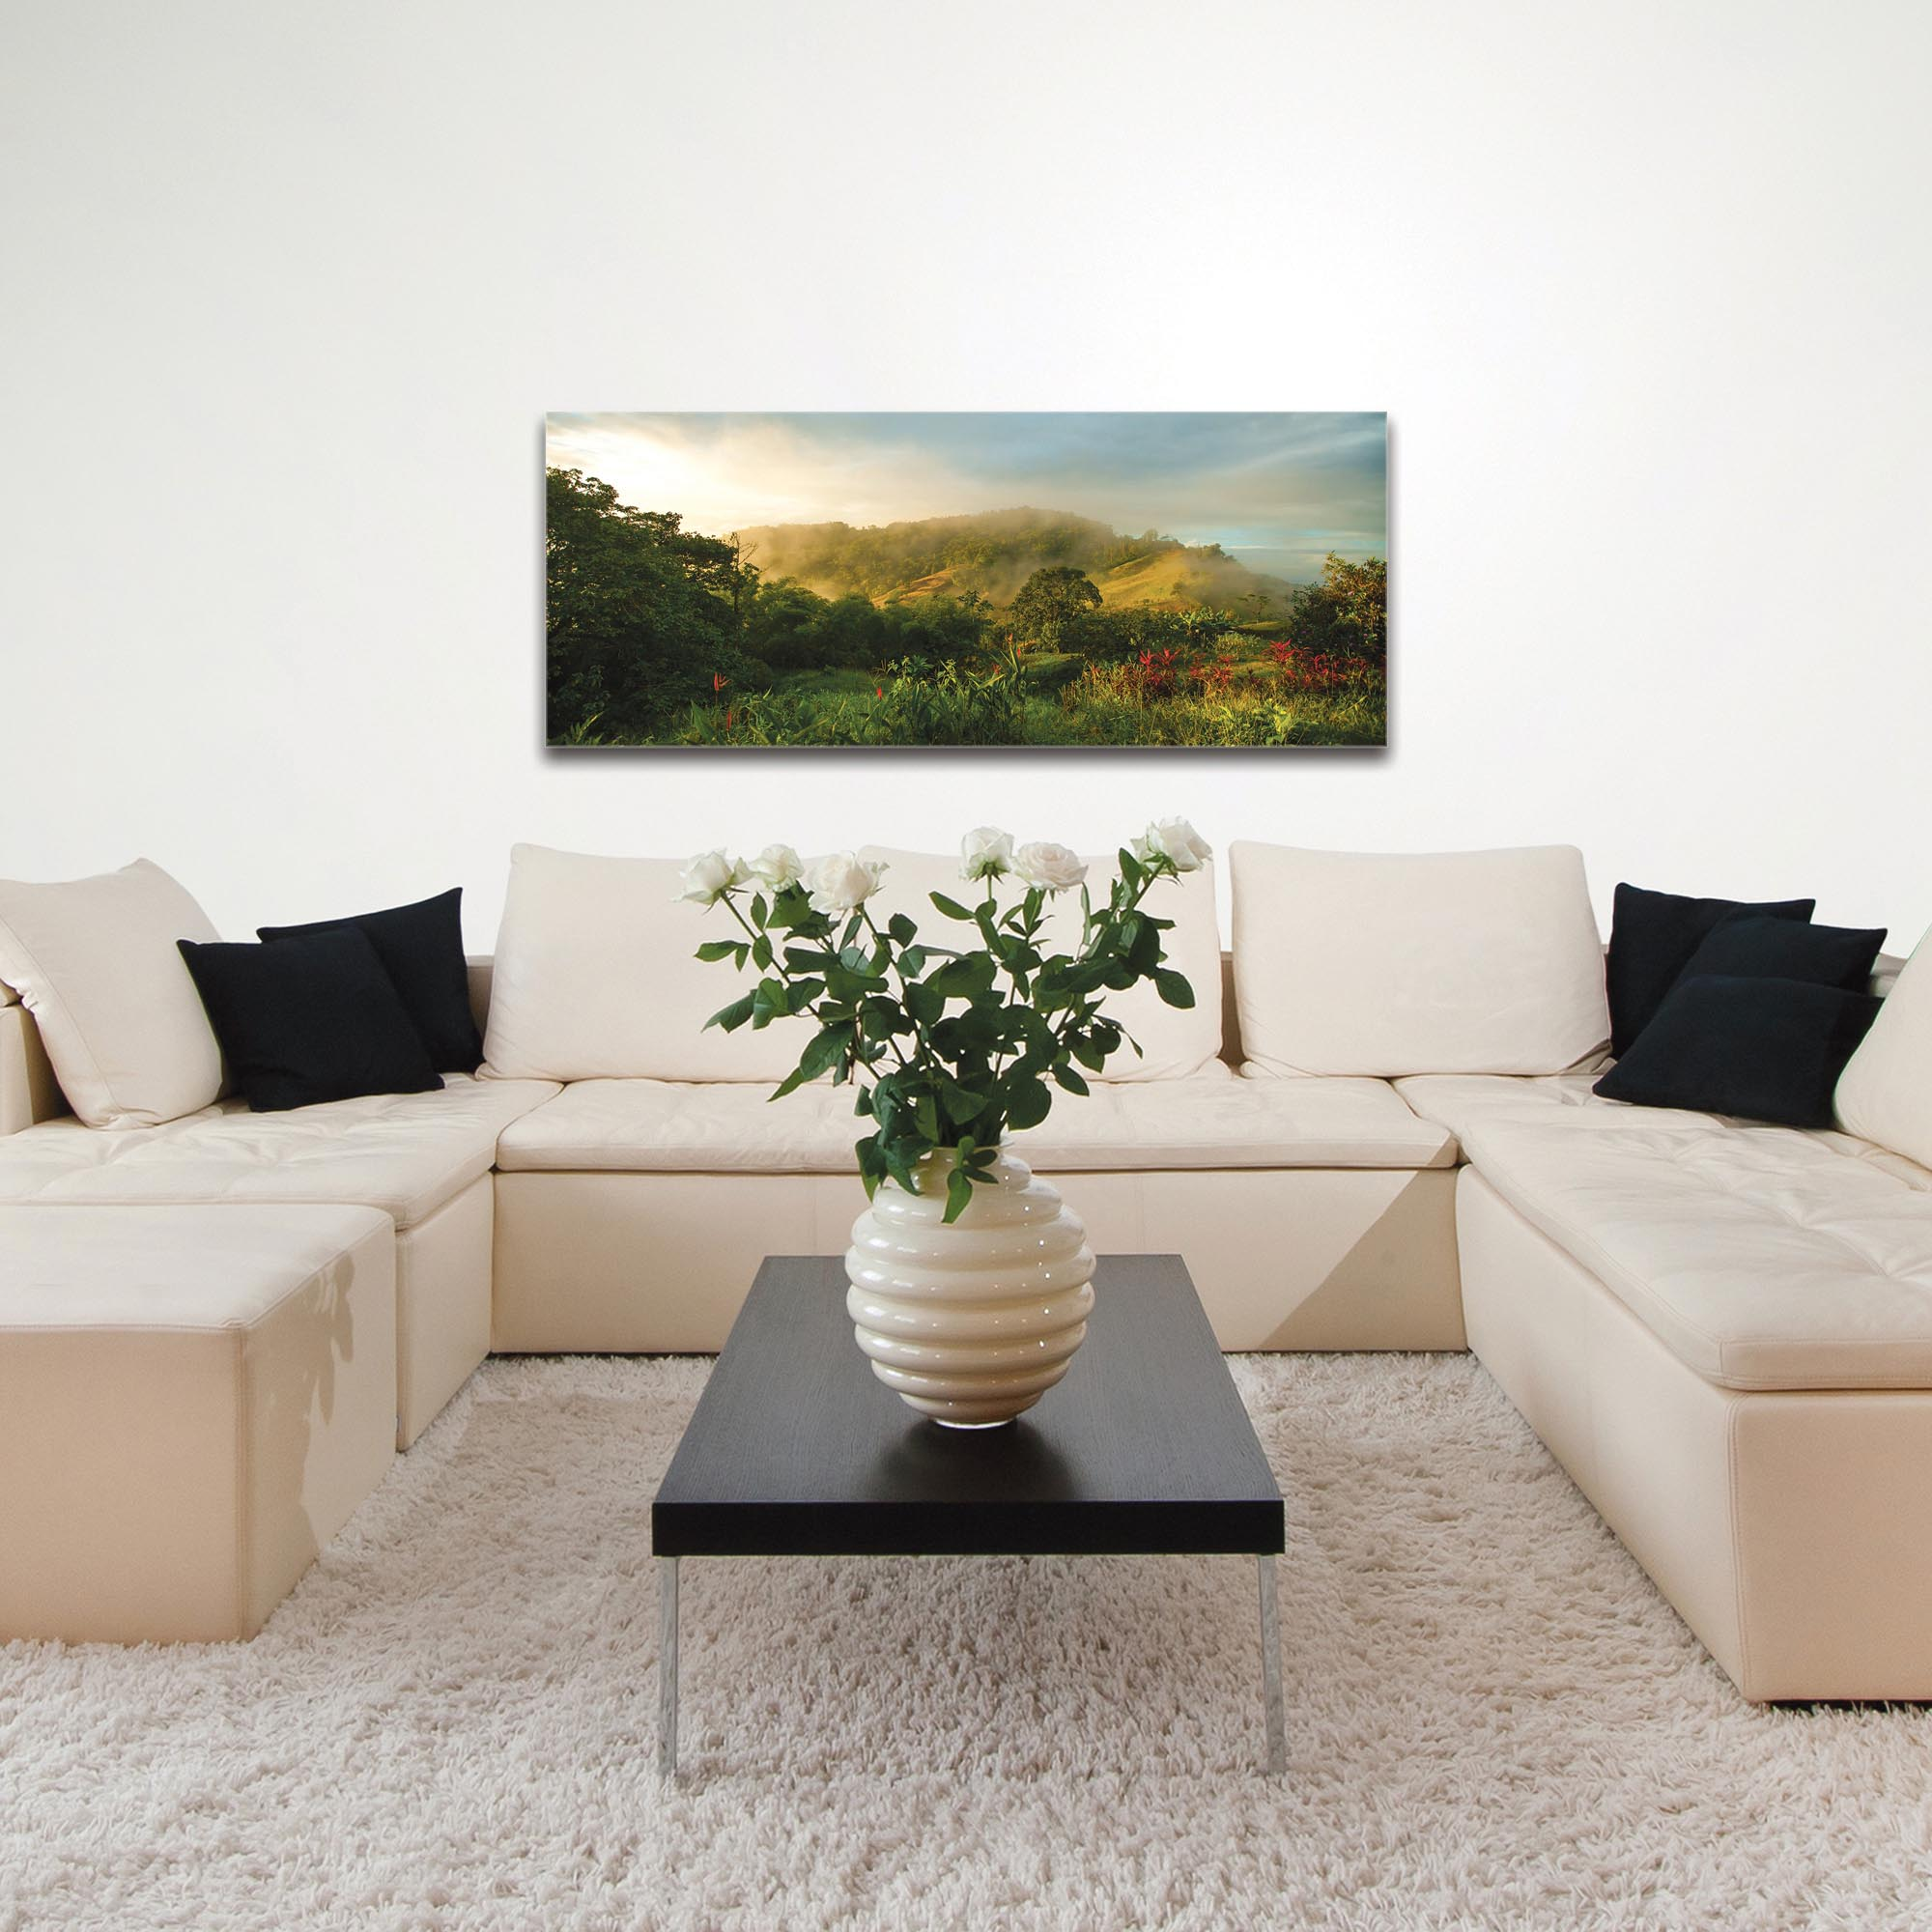 Landscape Photography 'Storybook Hills' - Mountain Scene Art on Metal or Plexiglass - Image 3